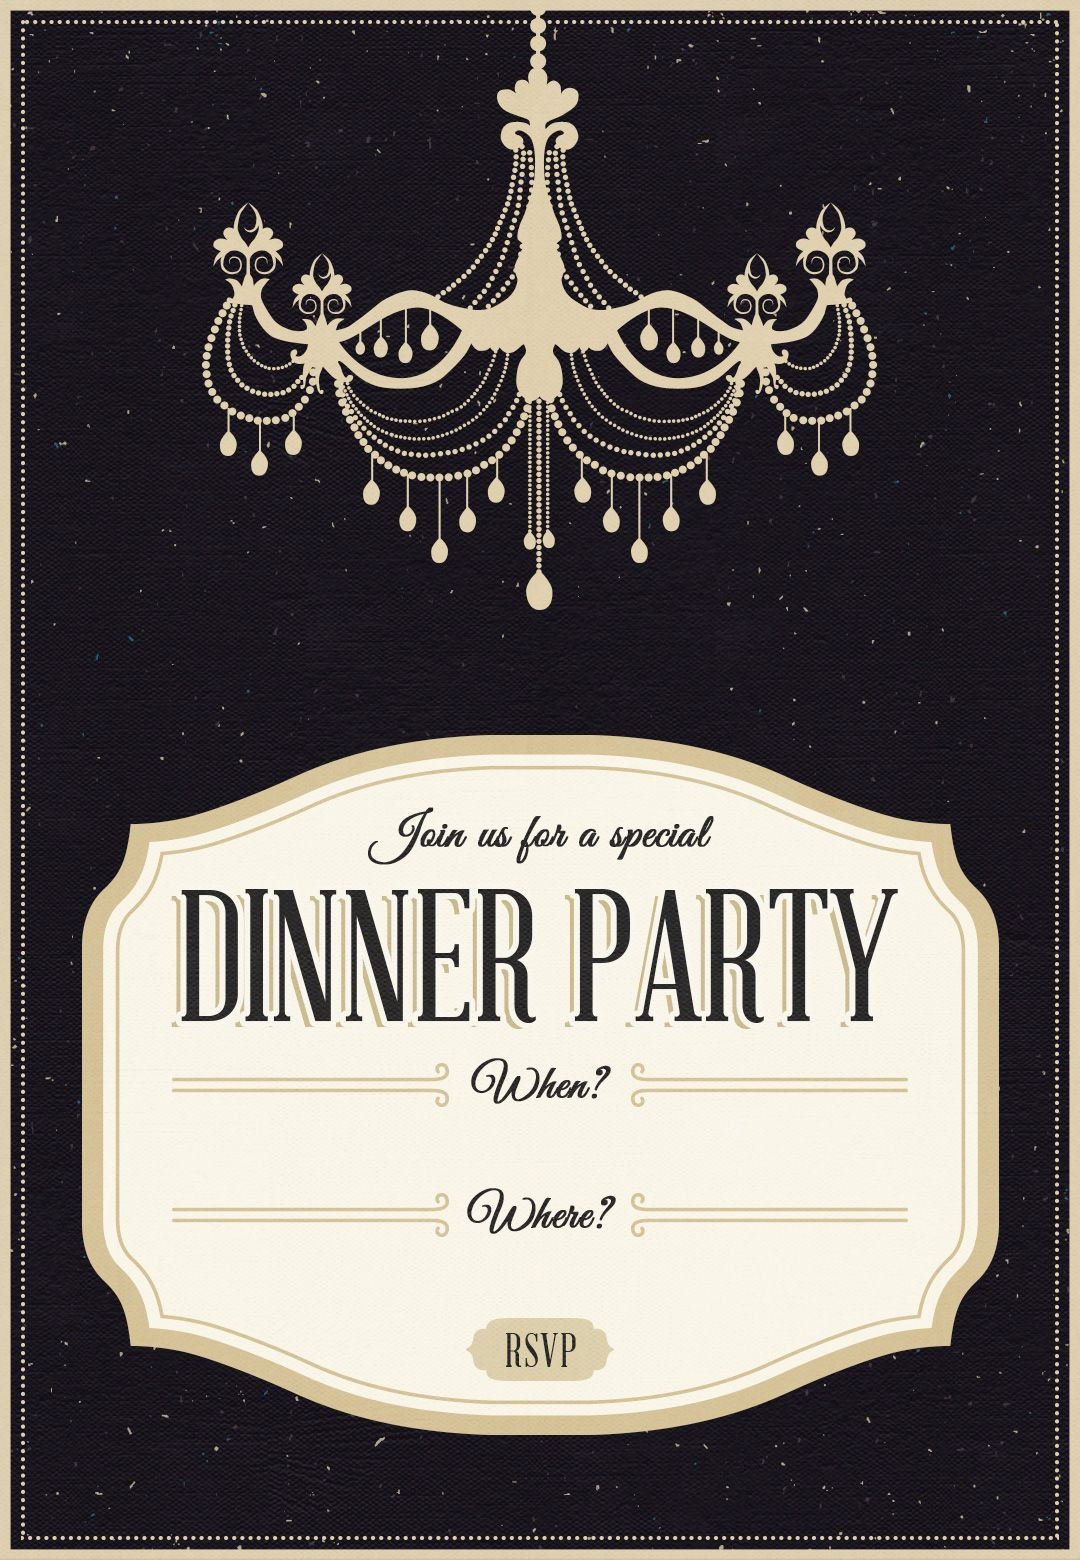 Dinner Party Invite Template